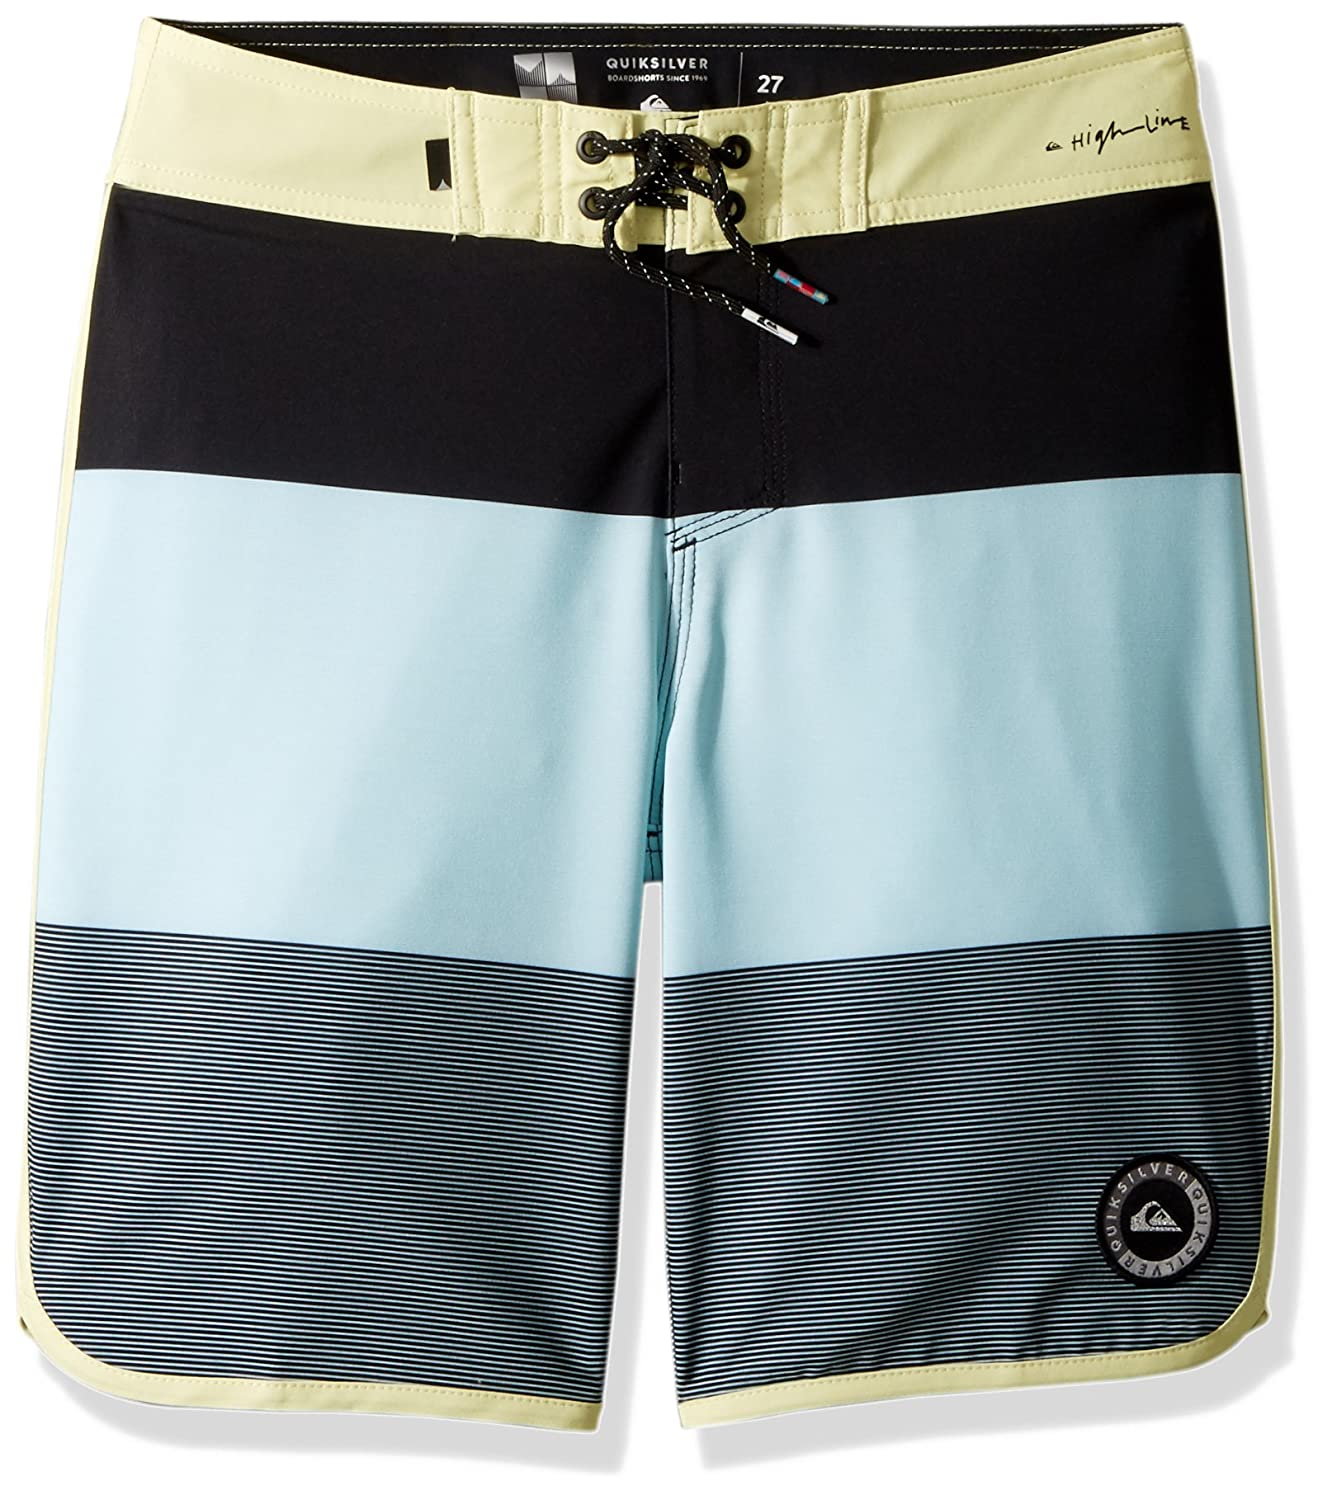 Quiksilver Boys' Big Highline Tijuana Scallop Youth Boardshort Swim Trunk EQBBS03301